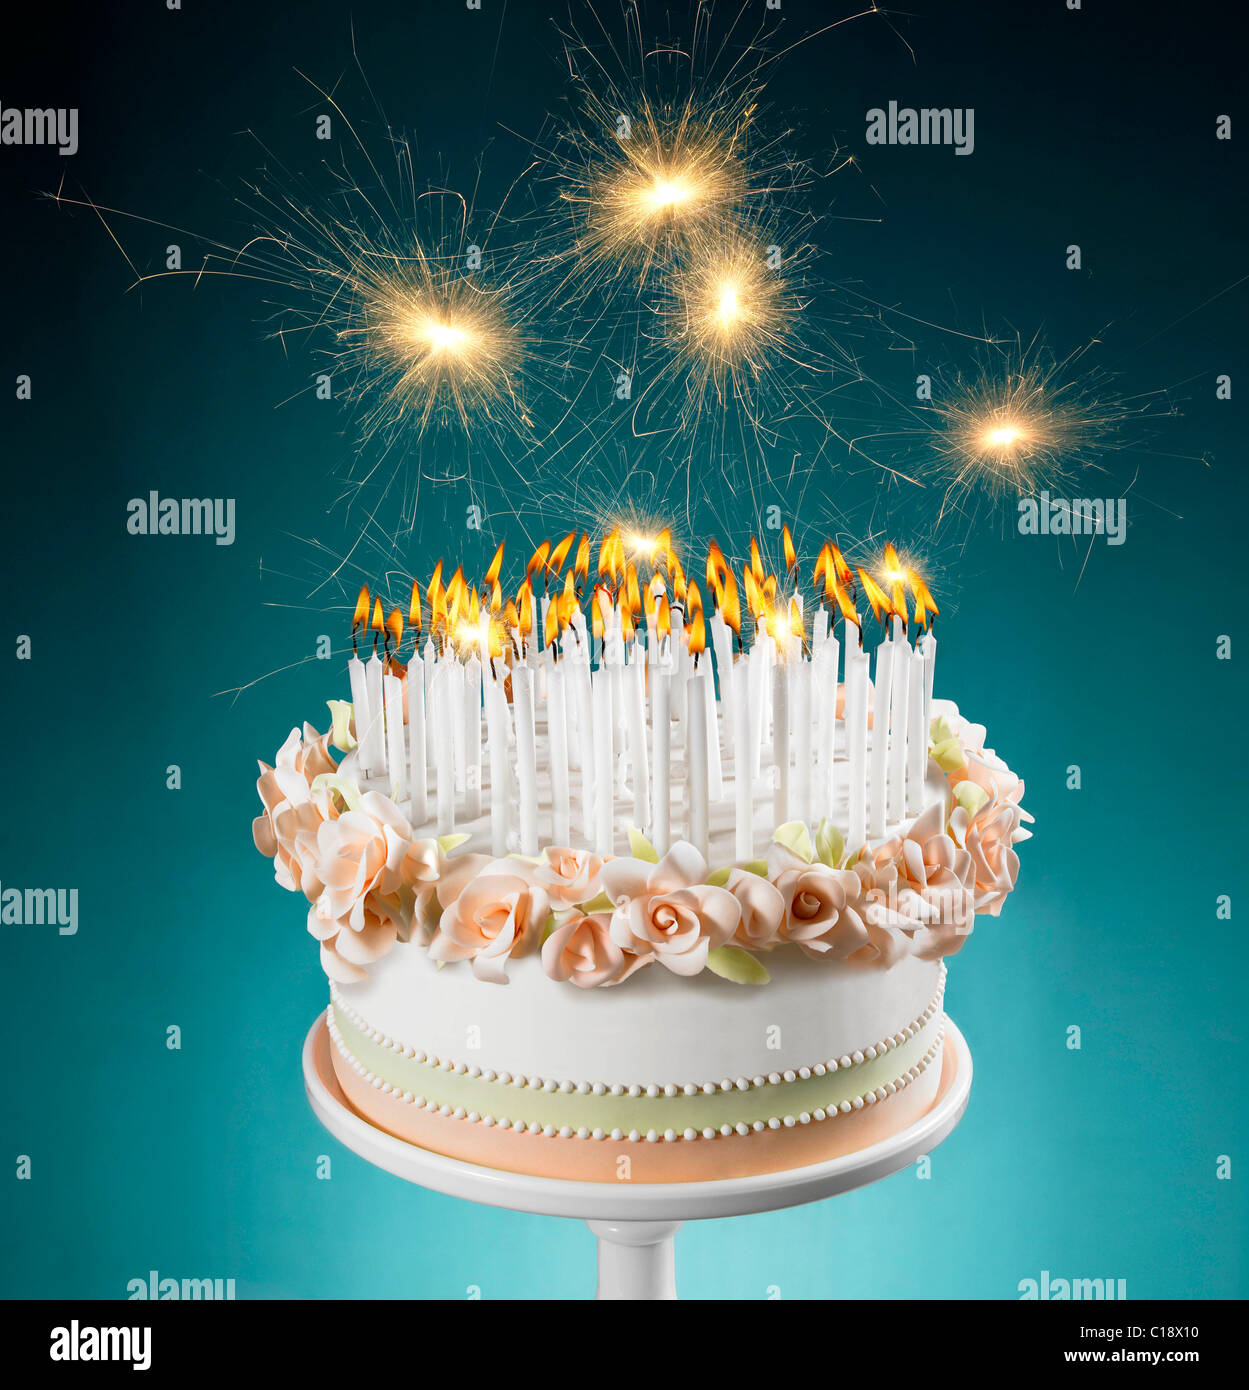 Phenomenal Birthday Cake With Lots Of Burning Candles Stock Photo 35231420 Birthday Cards Printable Benkemecafe Filternl